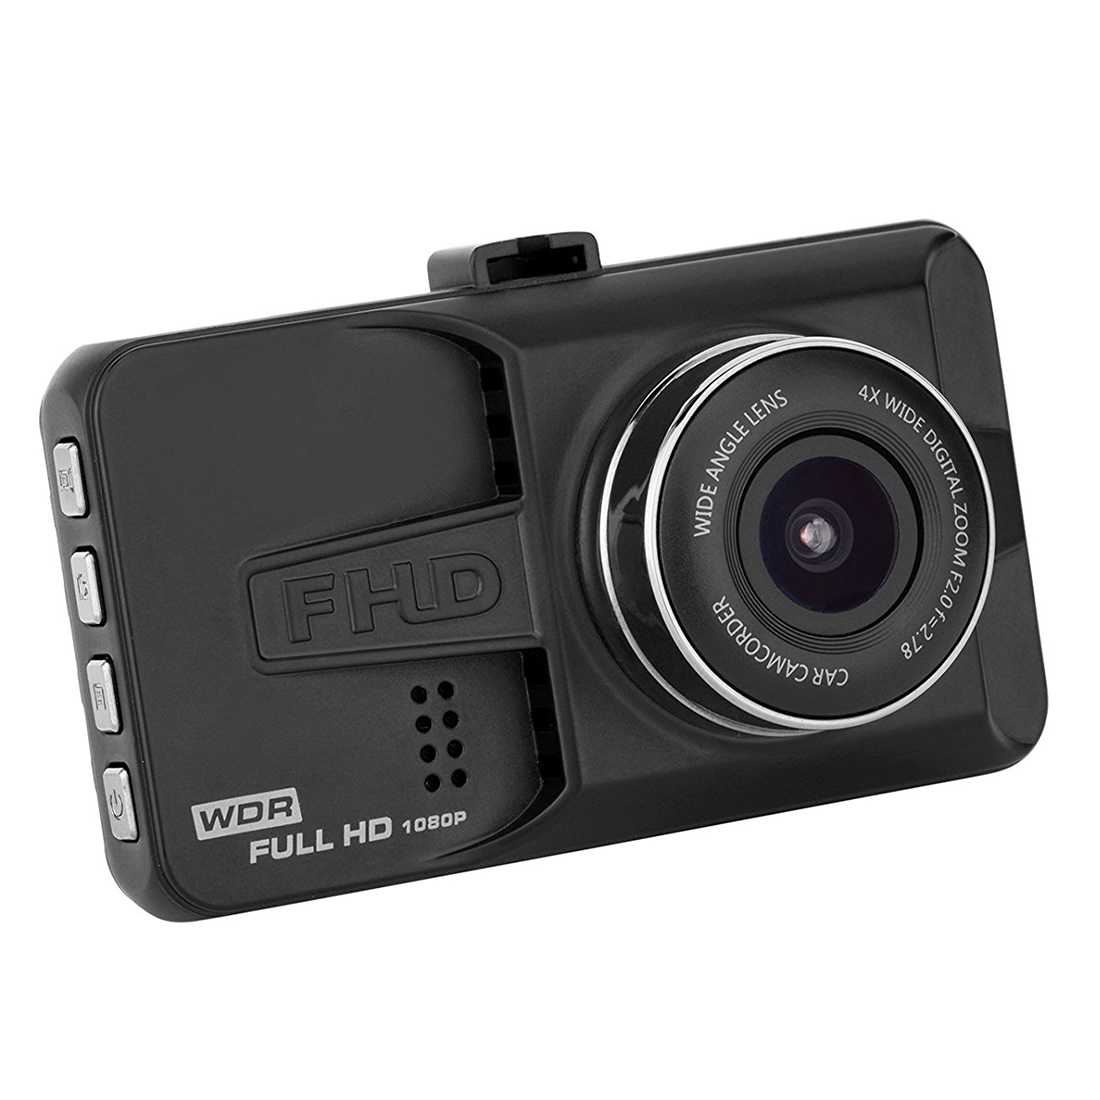 Car Black Box, Dashboard Camera Recorder with 4 Wide Digital Zoom, Dash Cam with 3.0 inch IPS, 1080P FHD, G-Sensor, WDR, Loop